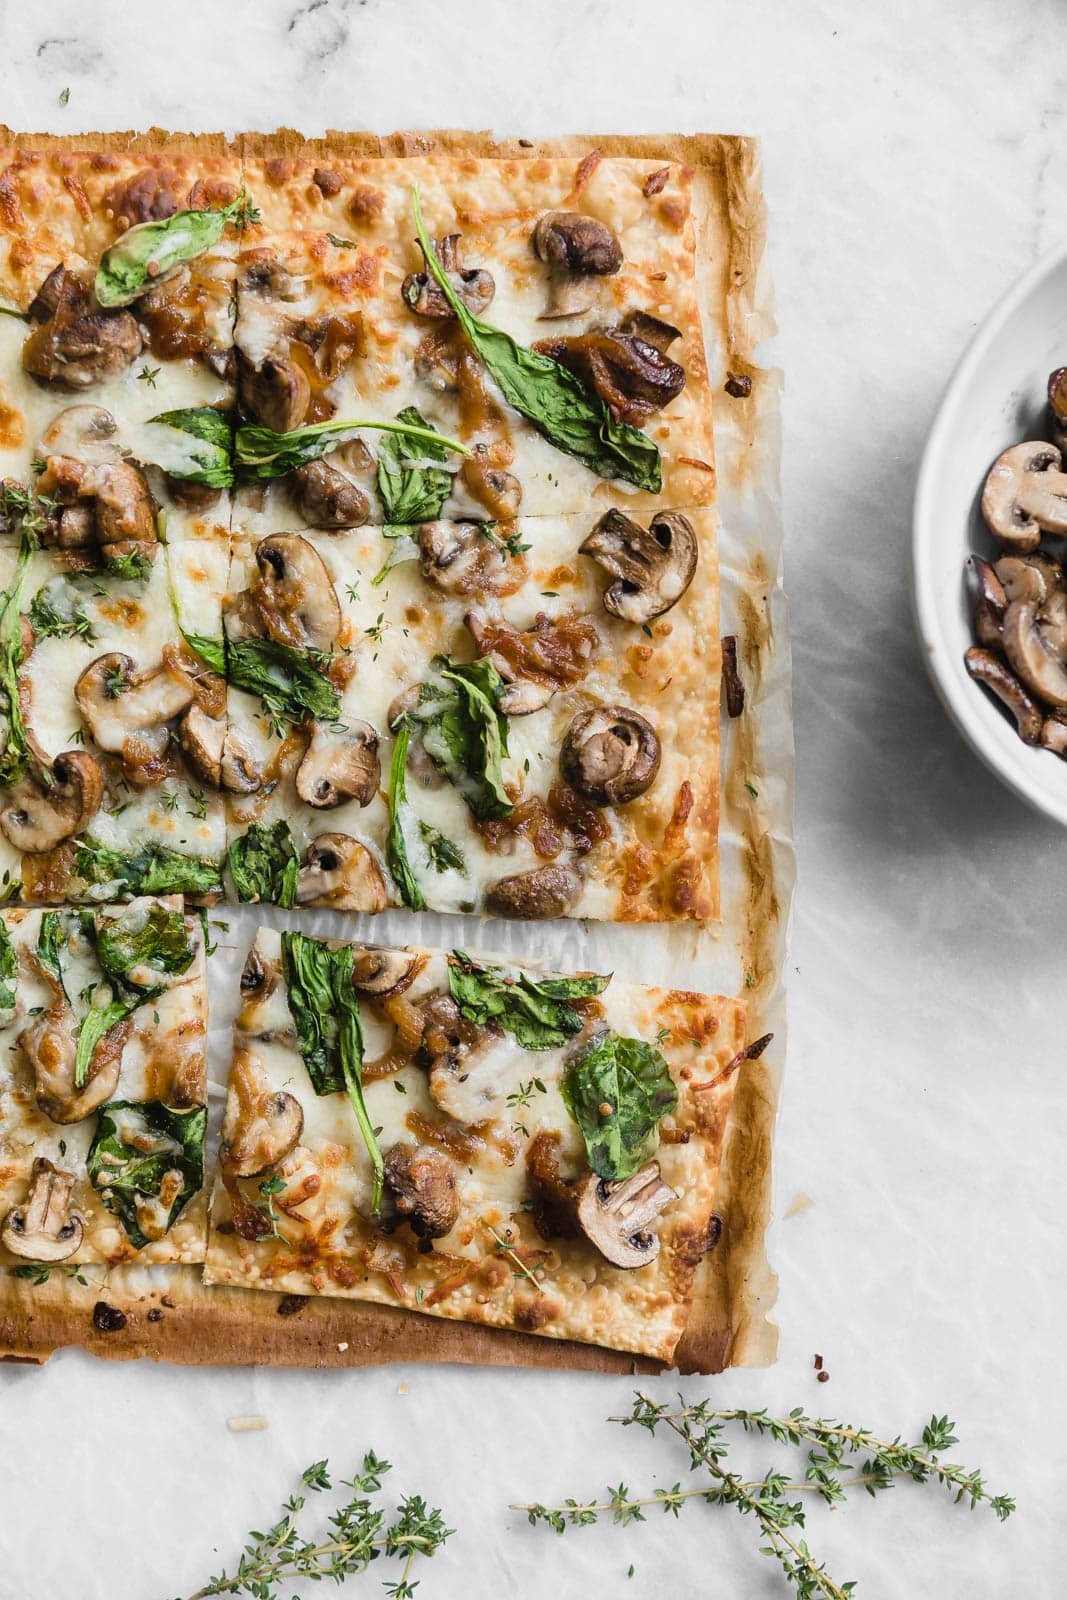 Caramelized Onion, Mushroom, & Spinach Pizza on marble countertop